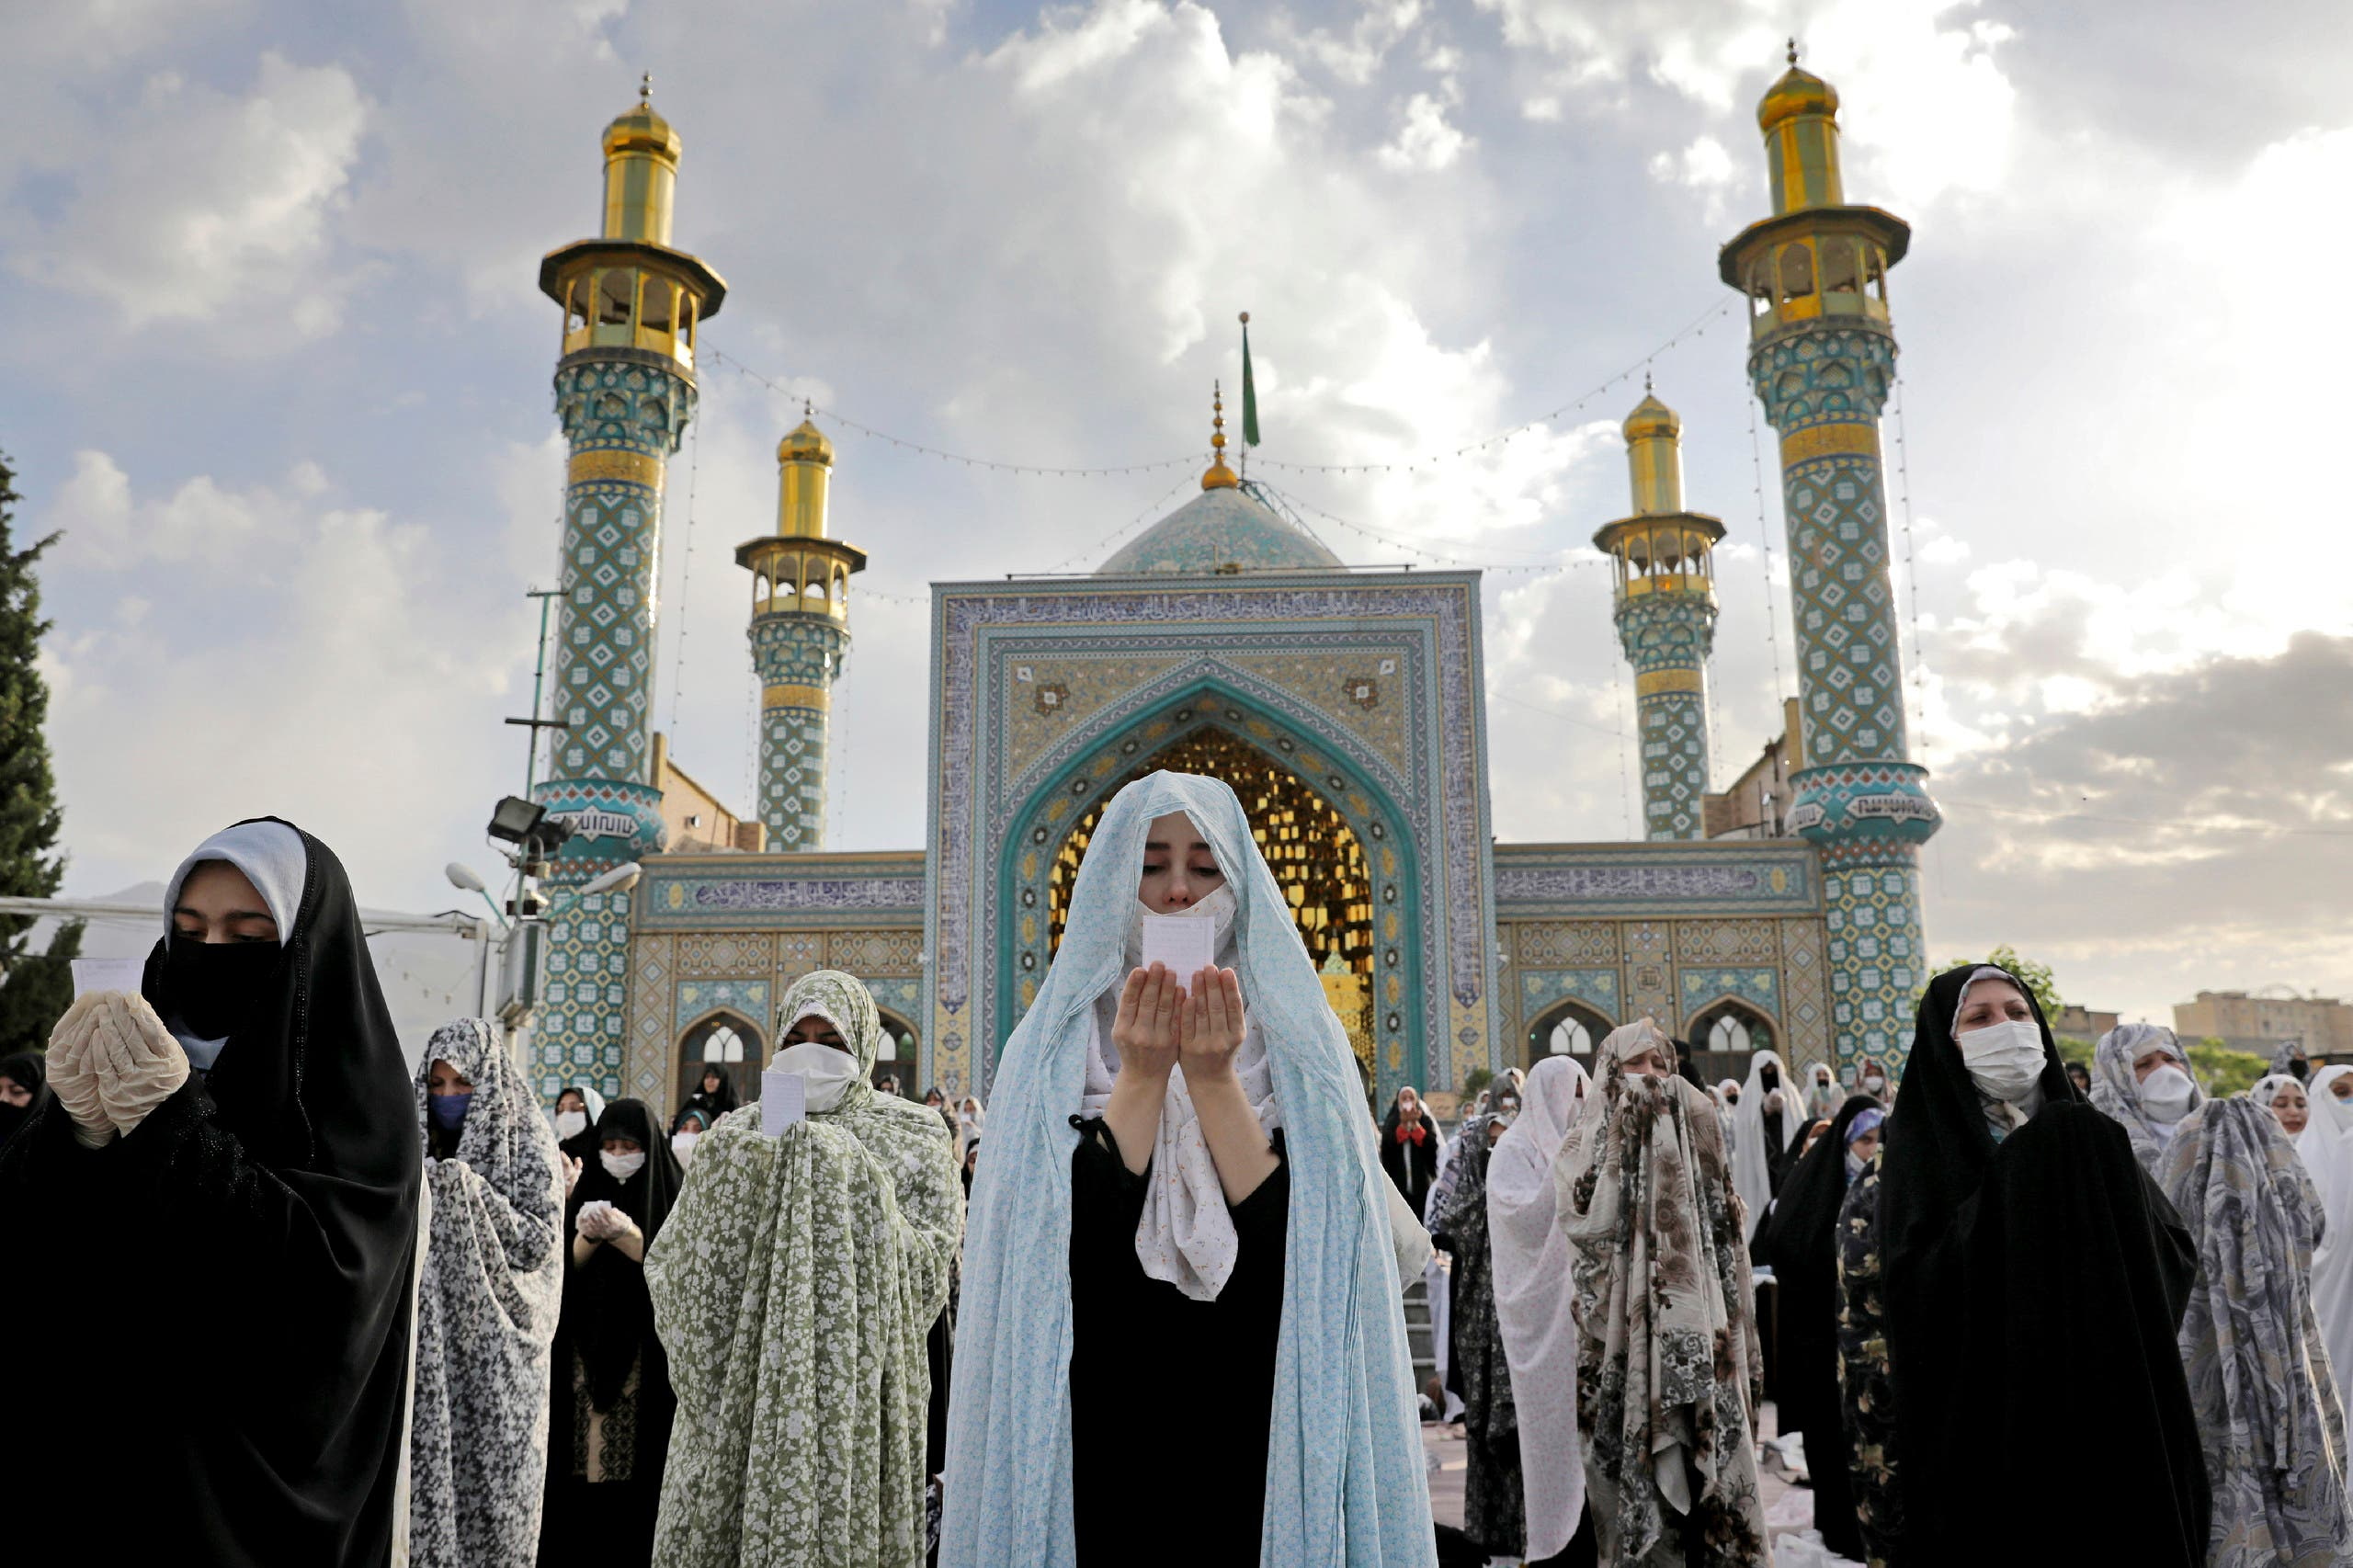 Worshippers wearing protective face masks offer Eid al-Fitr prayers outside a shrine to help prevent the spread of the coronavirus, in Tehran, Iran on May 24, 2020. (AP)